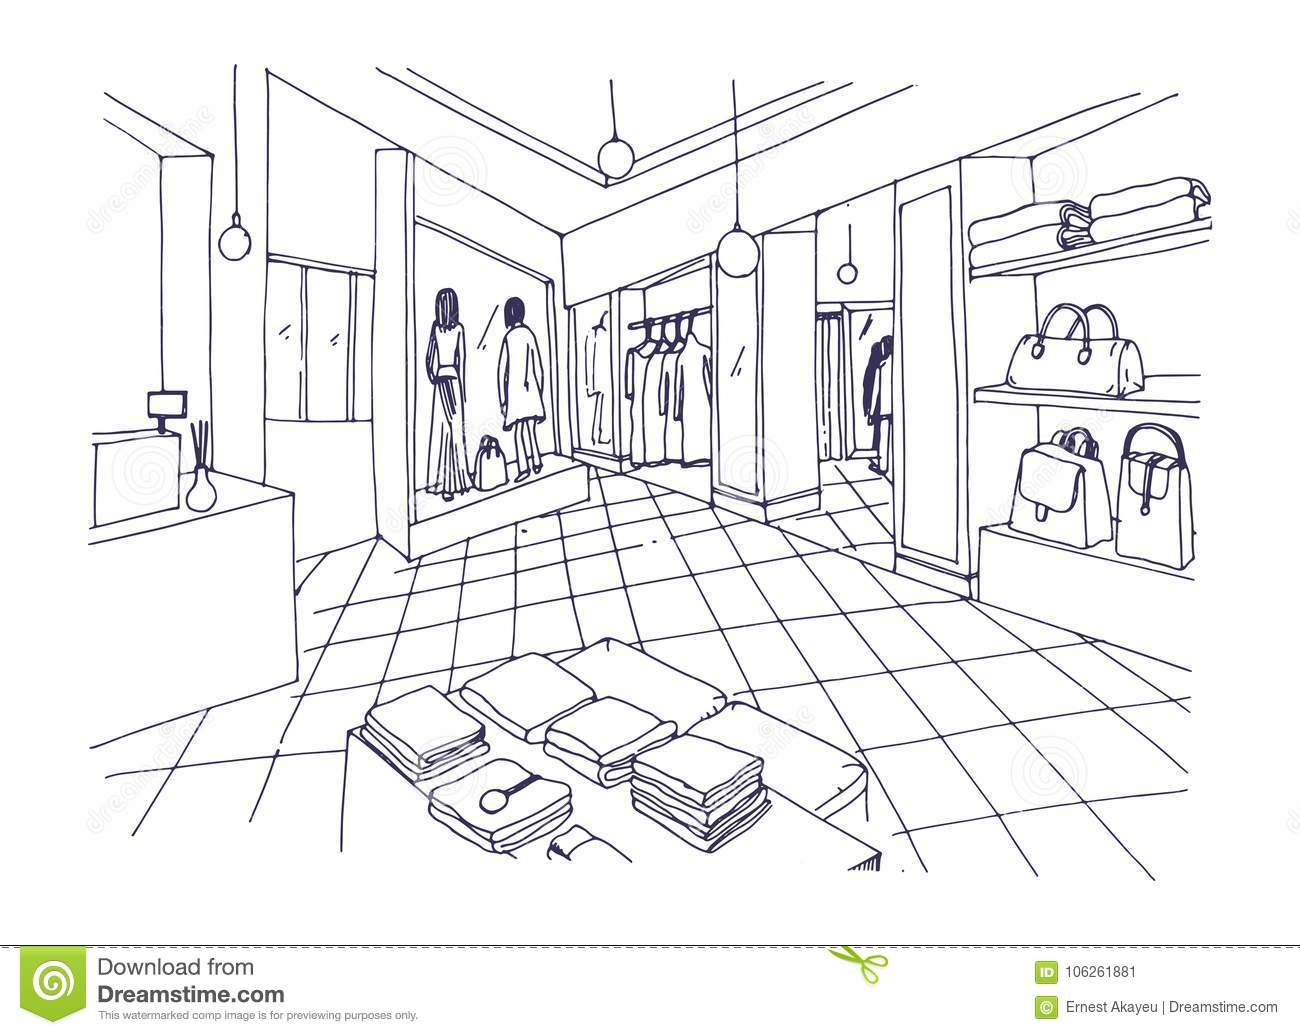 Monochrome Freehand Sketch Of Clothing Showroom Boutique Trendy Fashion Store Or Apparel Shop Interior With Shelving